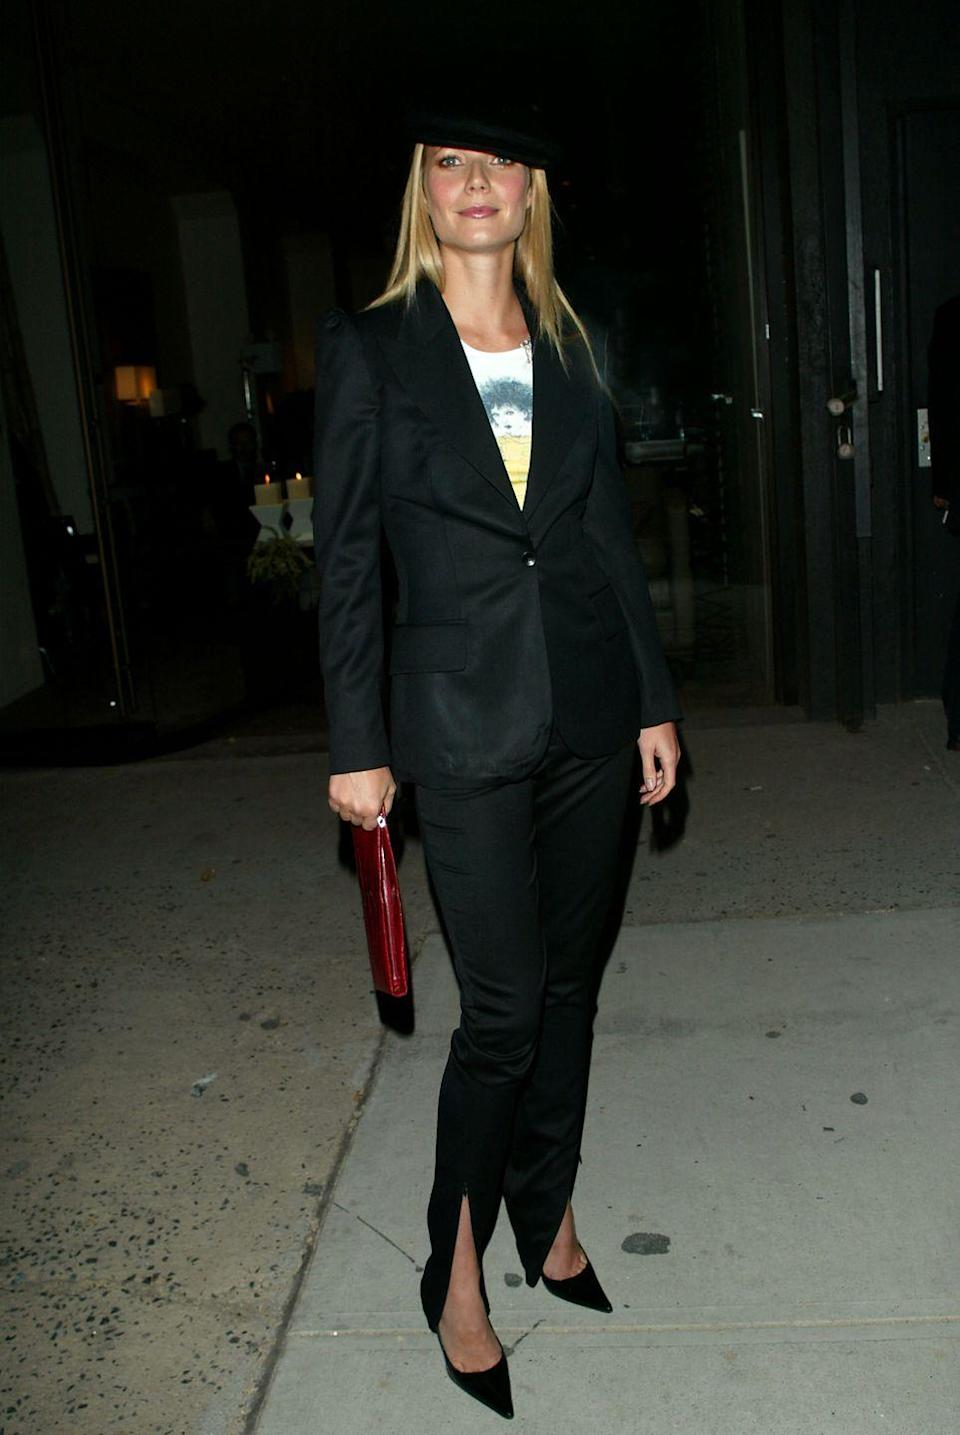 <p>Super-pointy toes weren't limited to boots. Gwyneth Paltrow's pumps were—like her pantsuit and fedora—another early-2000s fashion fixture.</p>